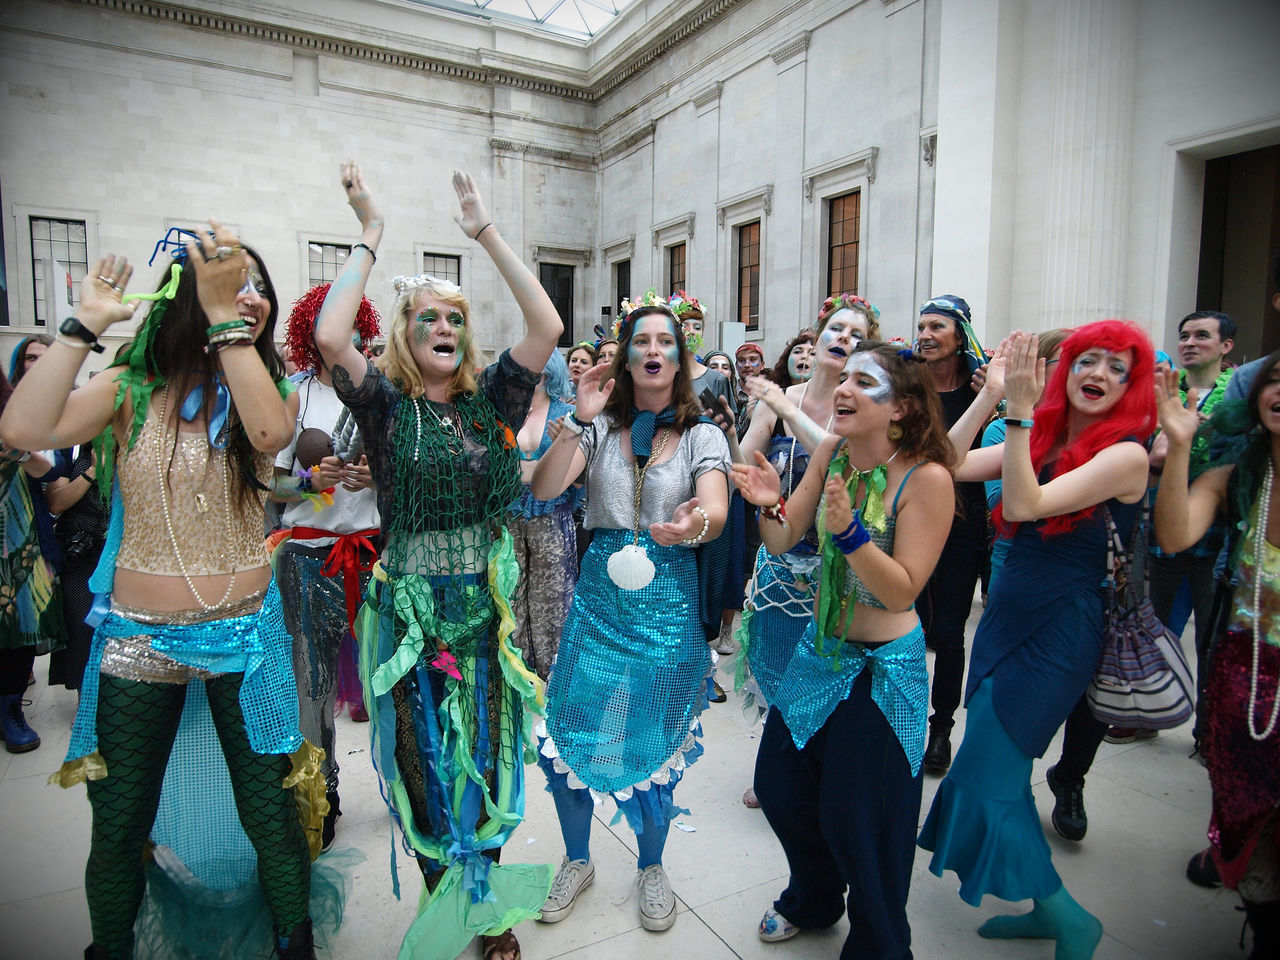 celebration, arms raised, fun, costume, real people, day, front view, lifestyles, leisure activity, dancing, happiness, enjoyment, building exterior, looking at camera, togetherness, outdoors, architecture, portrait, friendship, young women, young adult, people